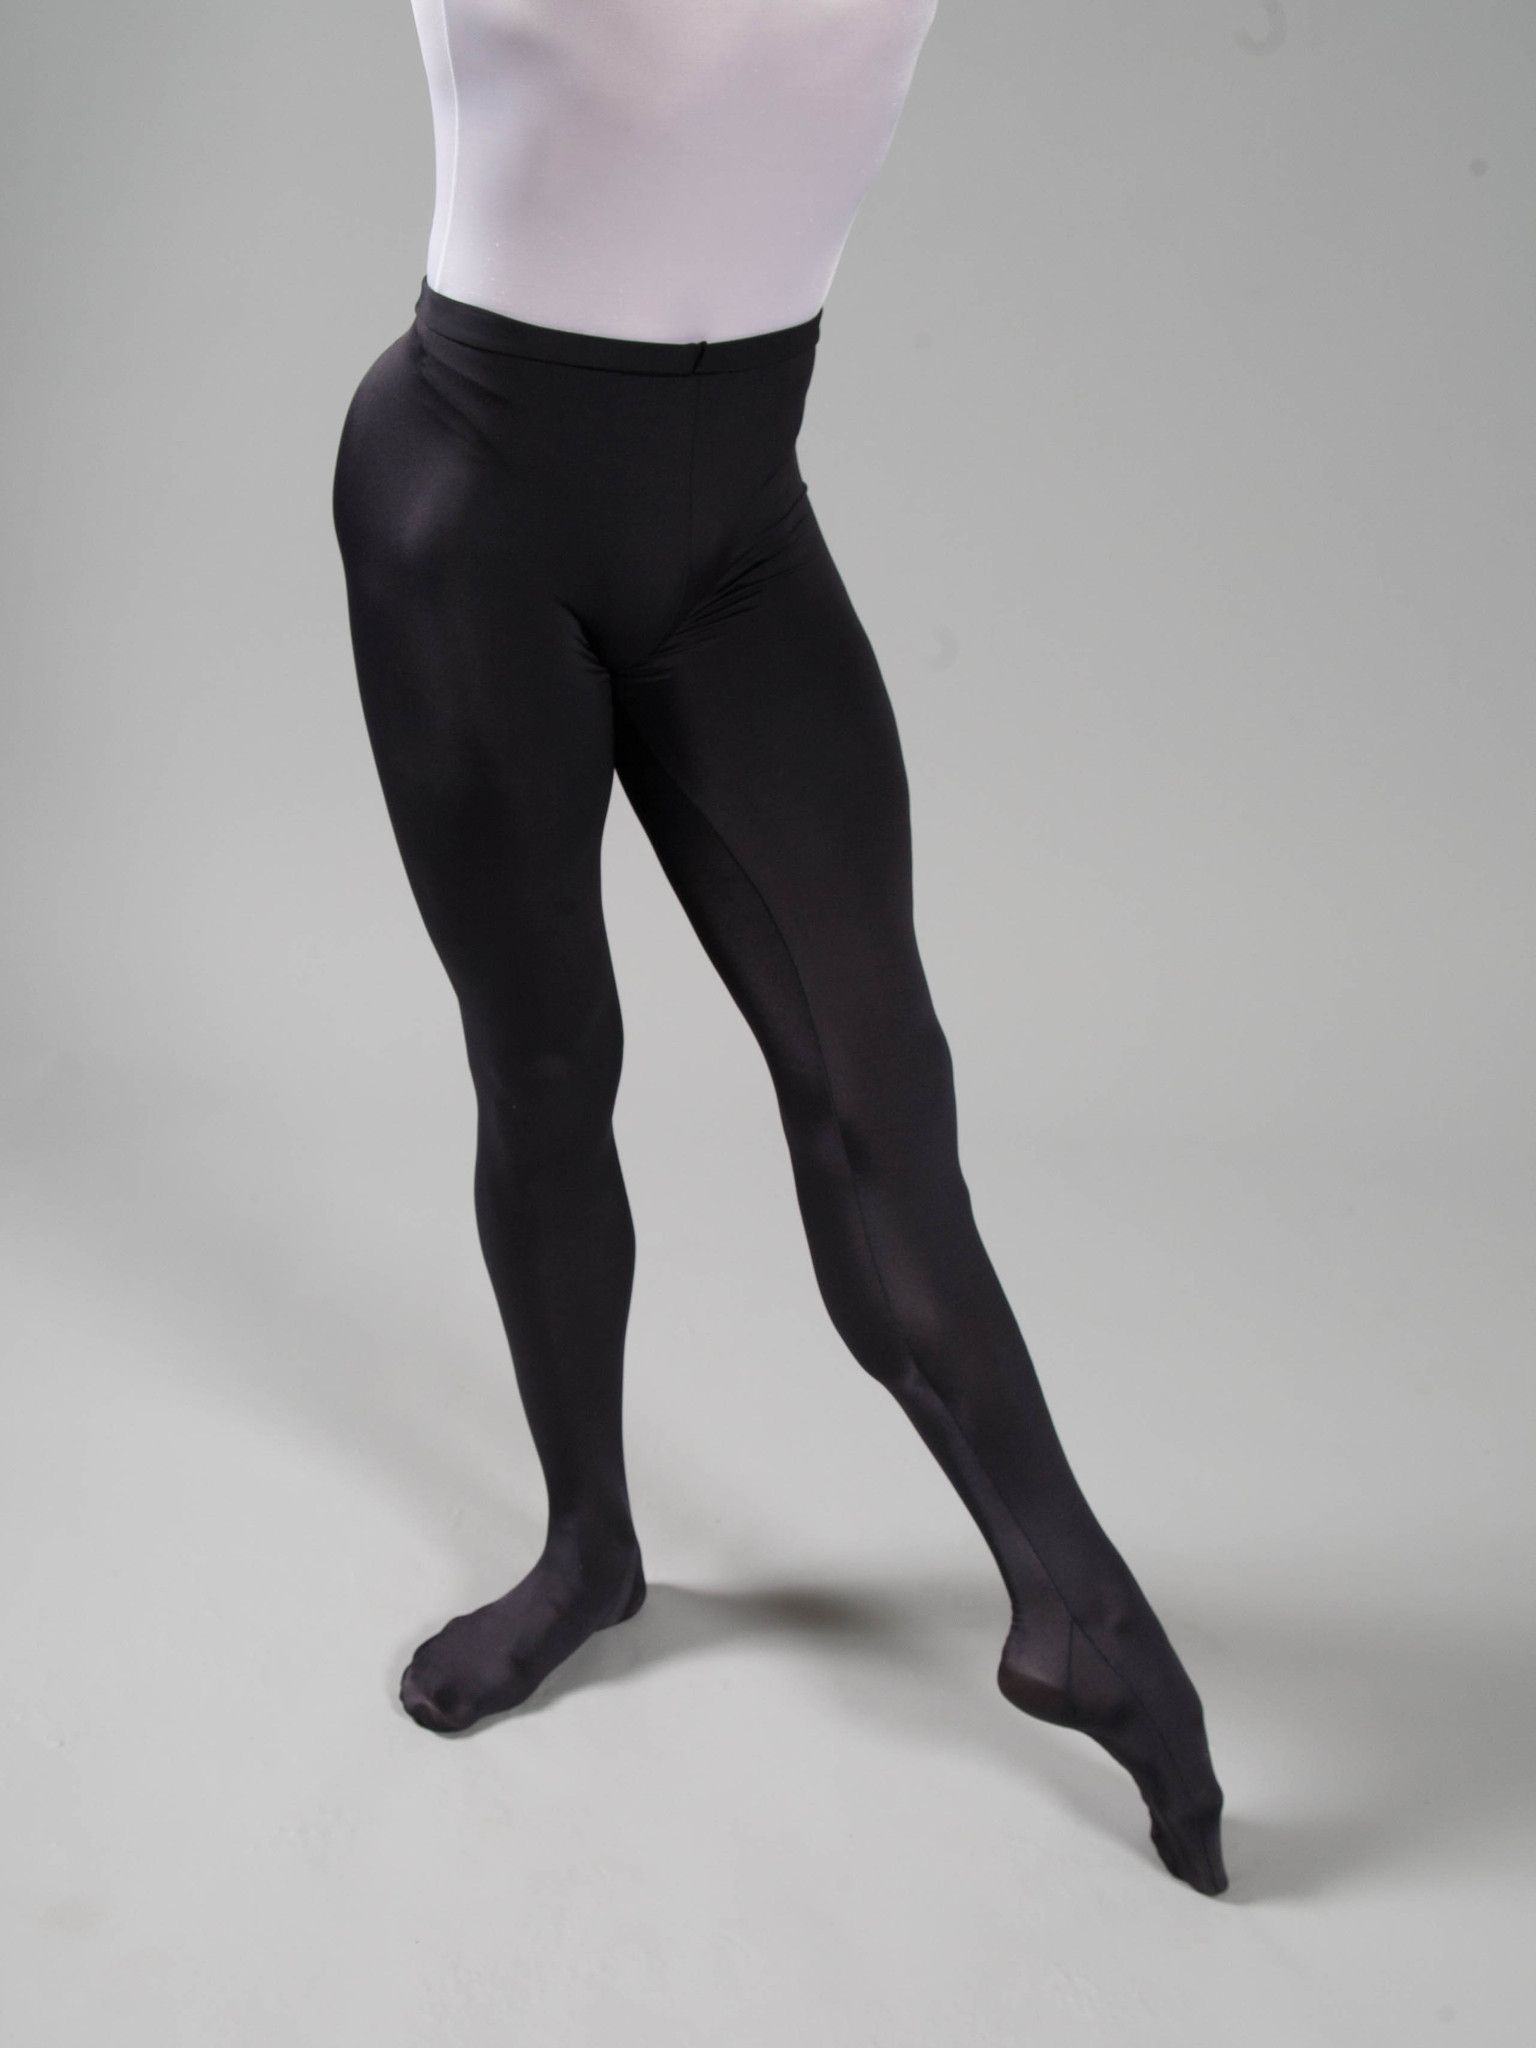 2667f7a478eb0 Milliskin Footed Tights - MENS | Men's and Boys' Dancewear ...